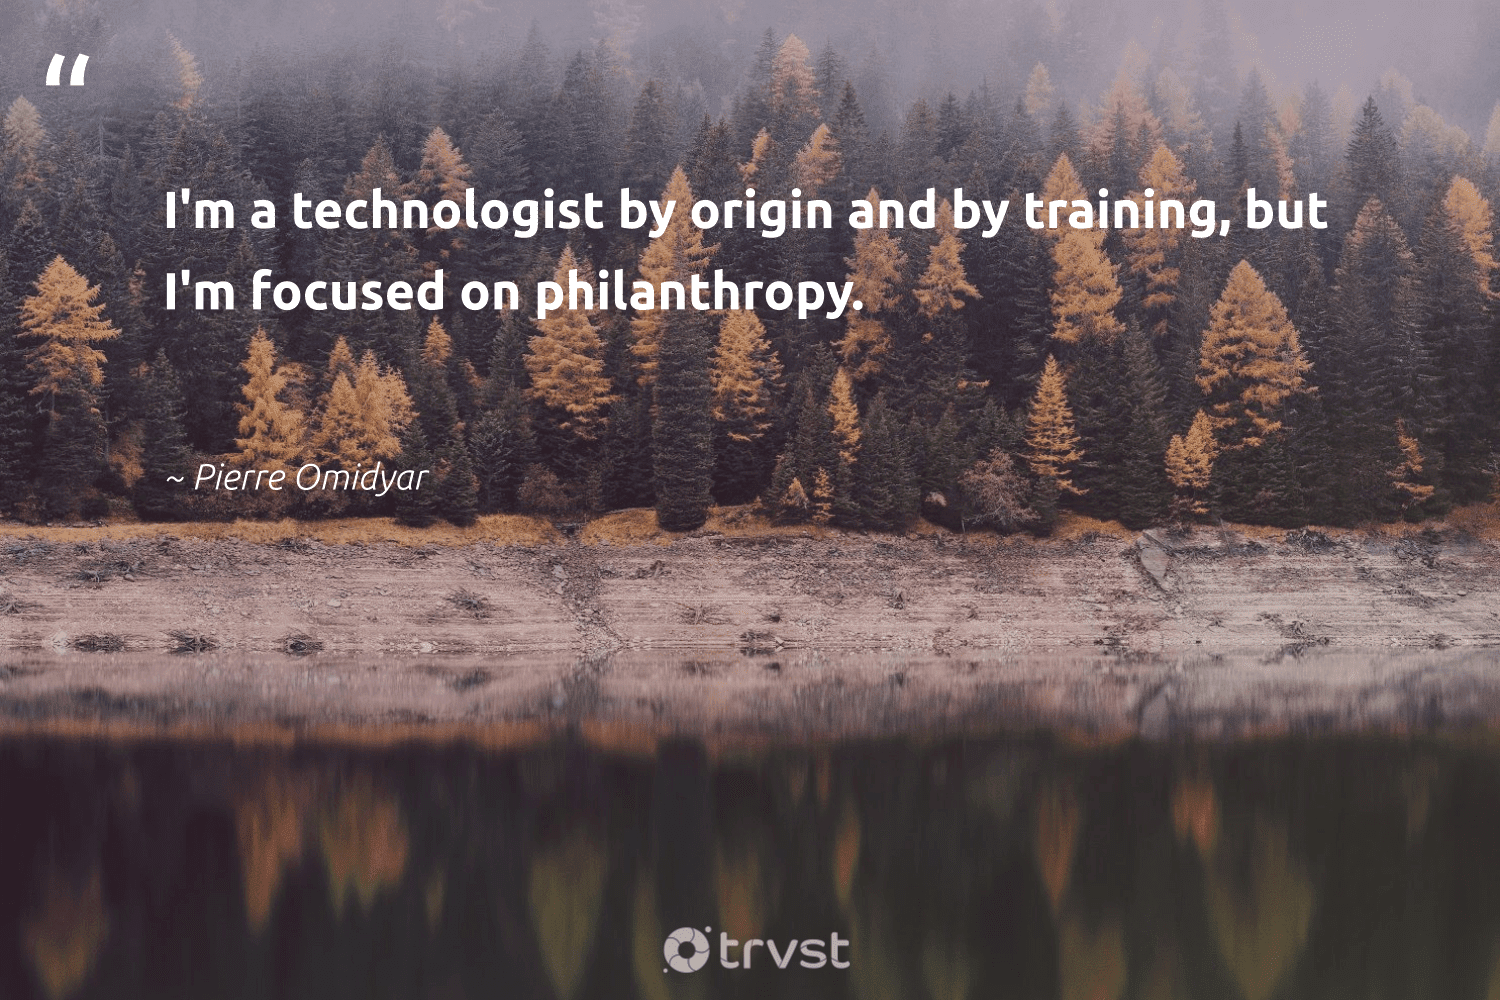 """""""I'm a technologist by origin and by training, but I'm focused on philanthropy.""""  - Pierre Omidyar #trvst #quotes #philanthropy #philanthropic #changemakers #giveforthefuture #impact #togetherwecan #itscooltobekind #beinspired #ecoconscious #bethechange"""